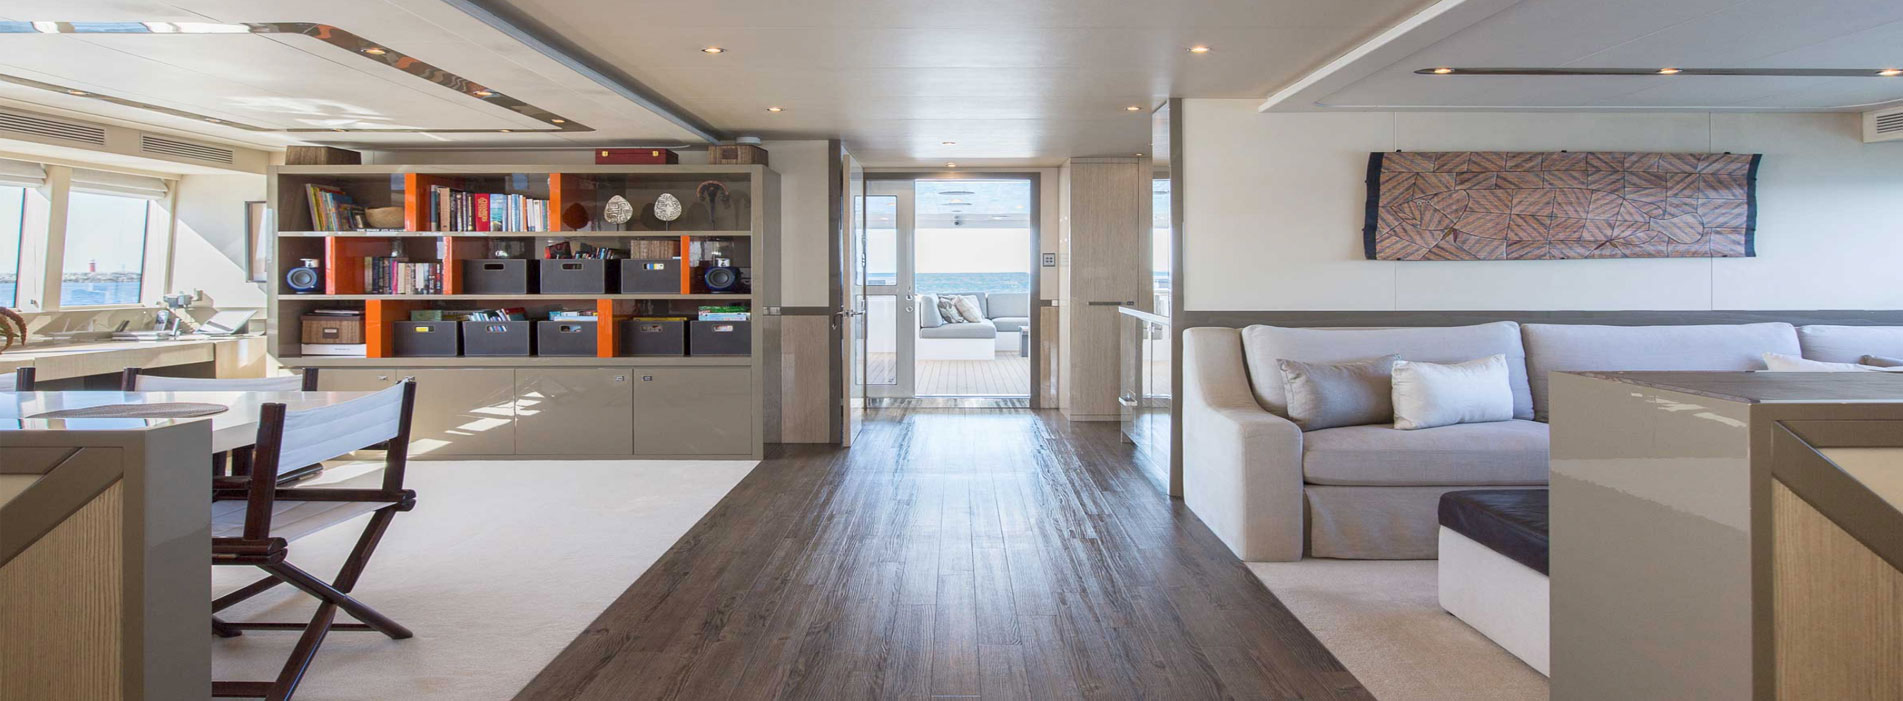 Ocean-Dream-library-lounge-interior-Perth-luxury-boat-charters